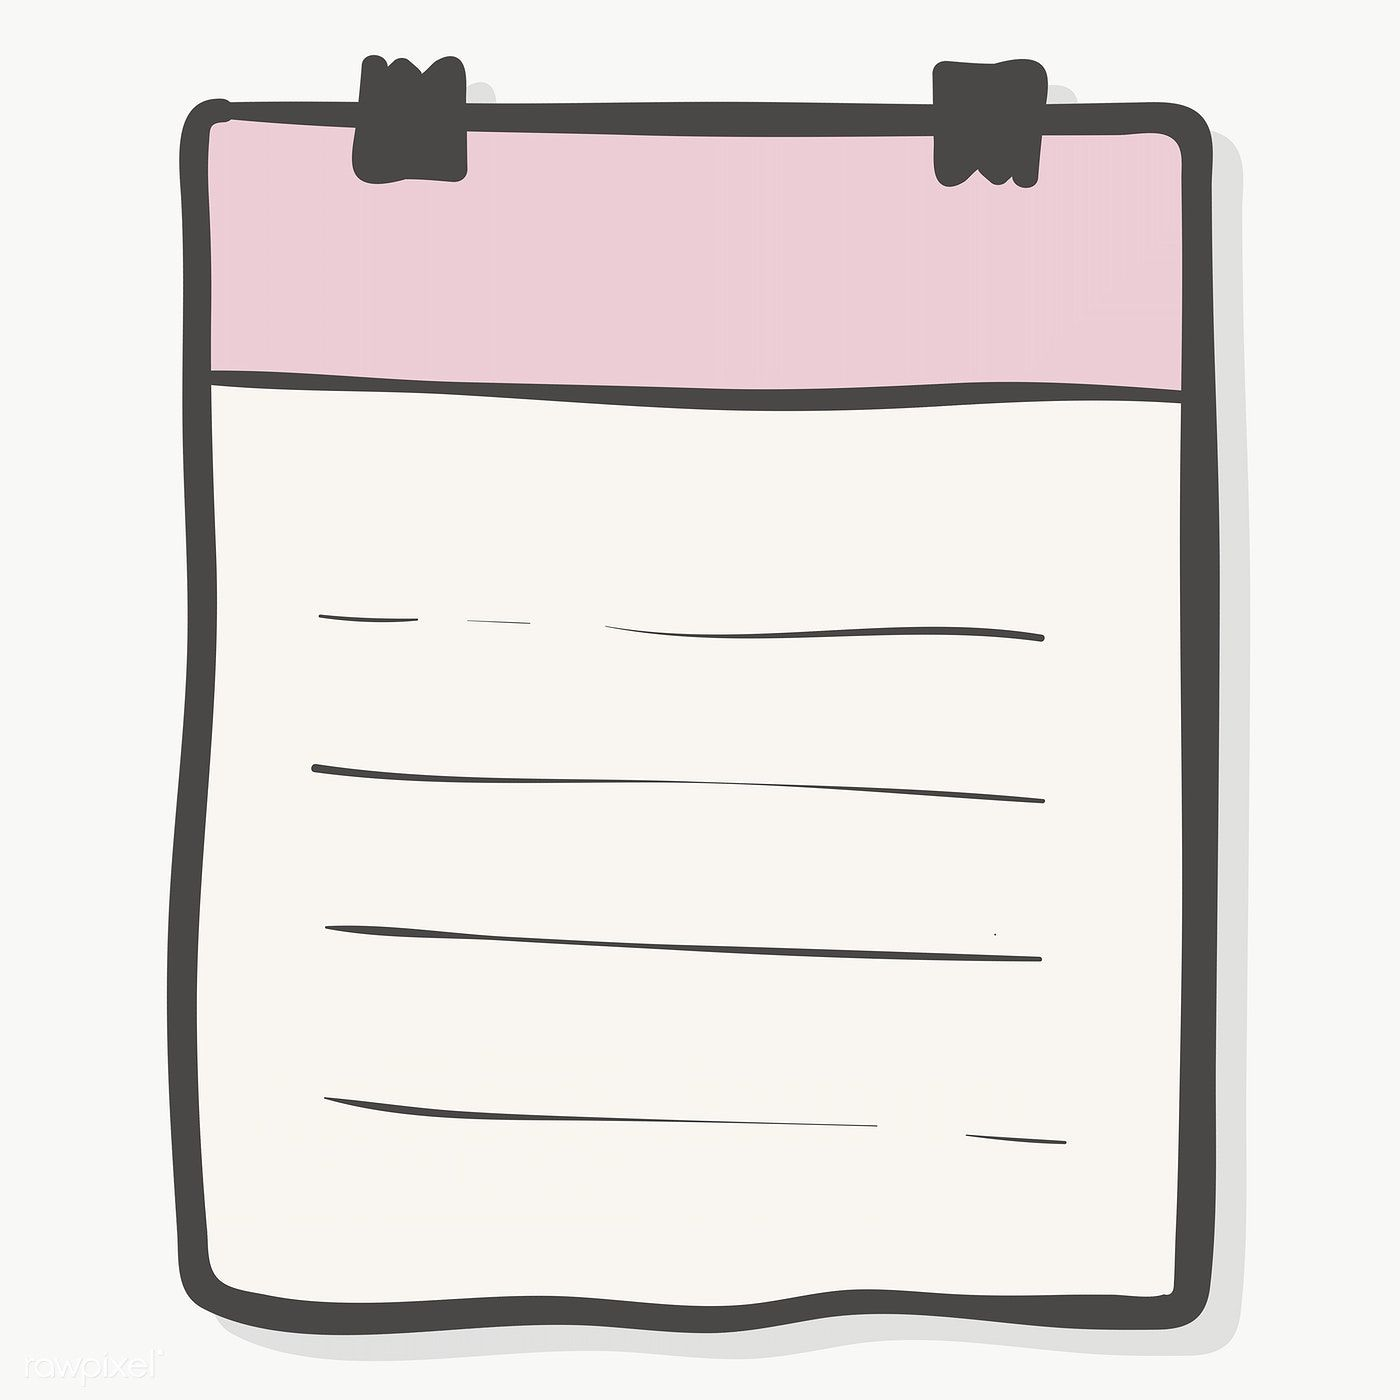 Blank Lined Paper Note With Binder Paper Clips Transparent Png Free Image By Rawpixel Com Chayanit Note Paper Free Paper Printables Binder Paper